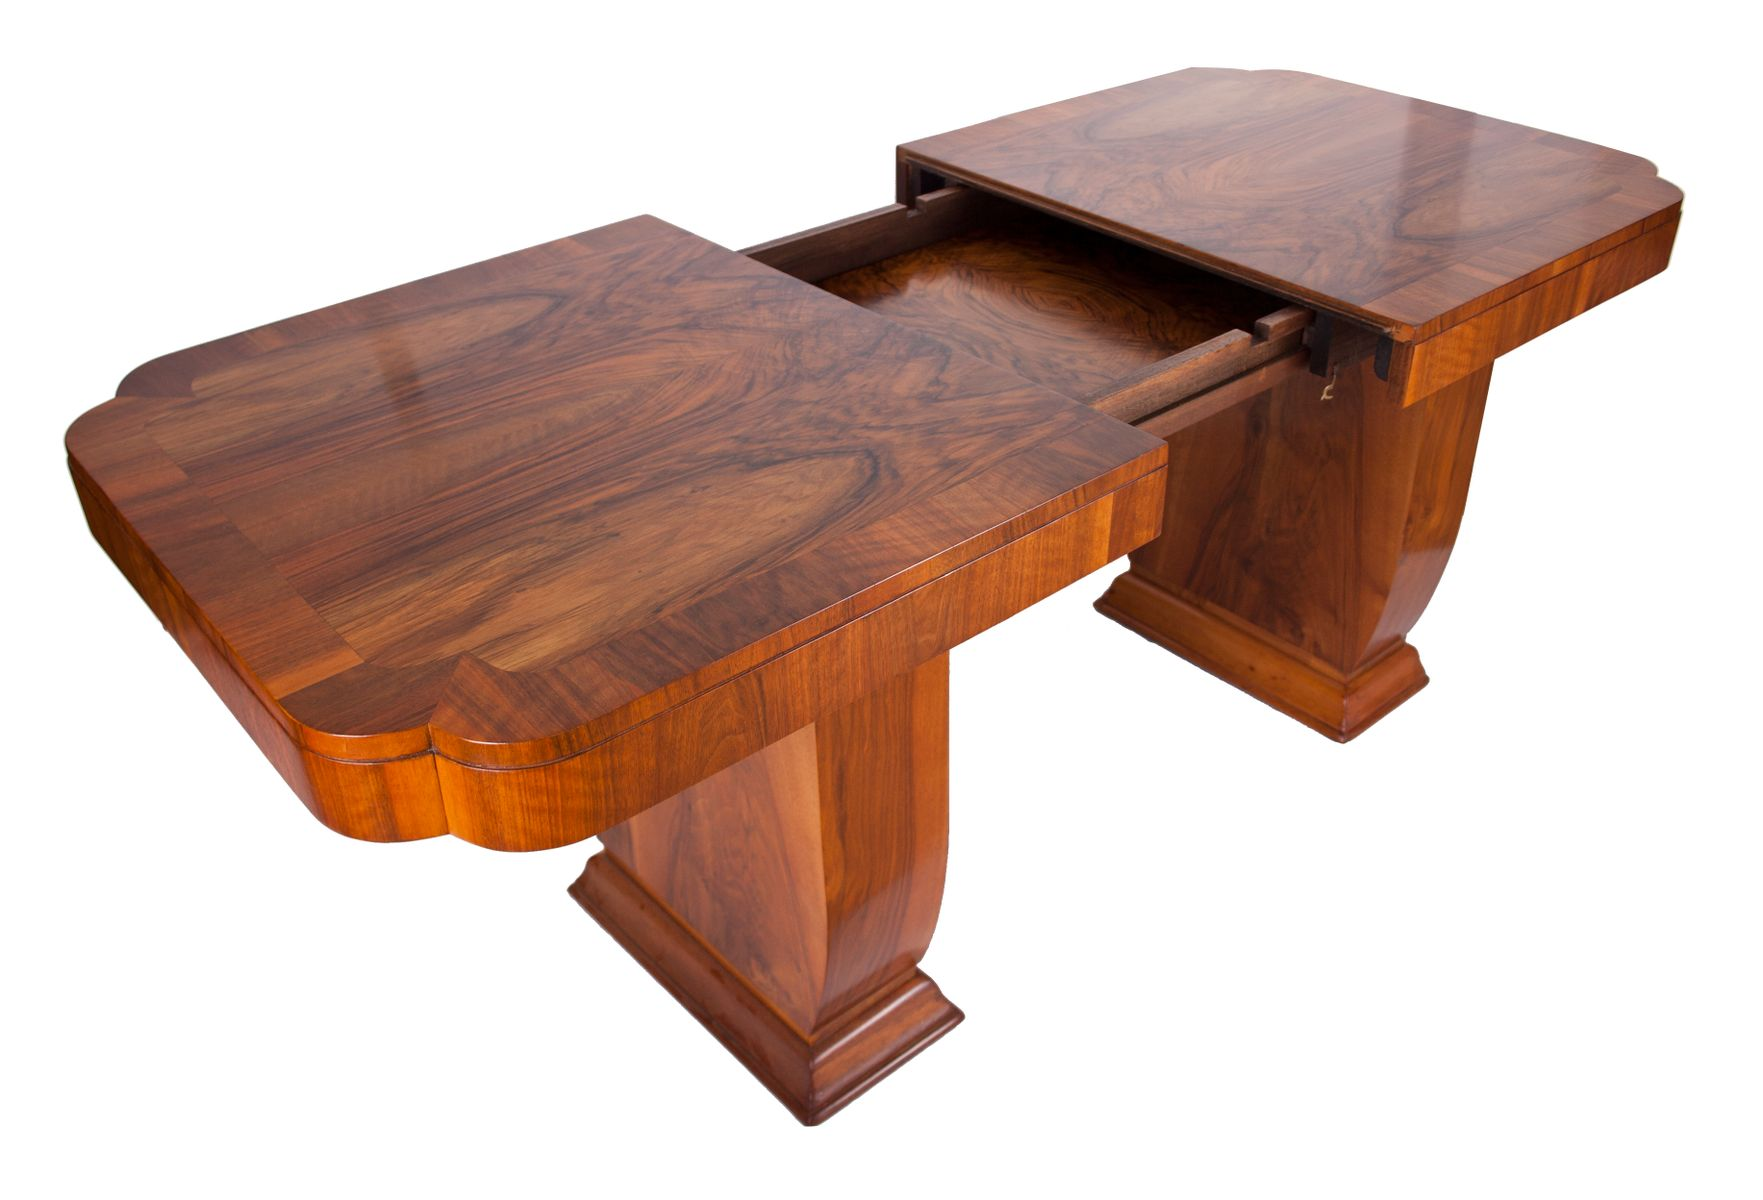 Art deco walnut dining table 1930s for sale at pamono for Table de nuit art deco